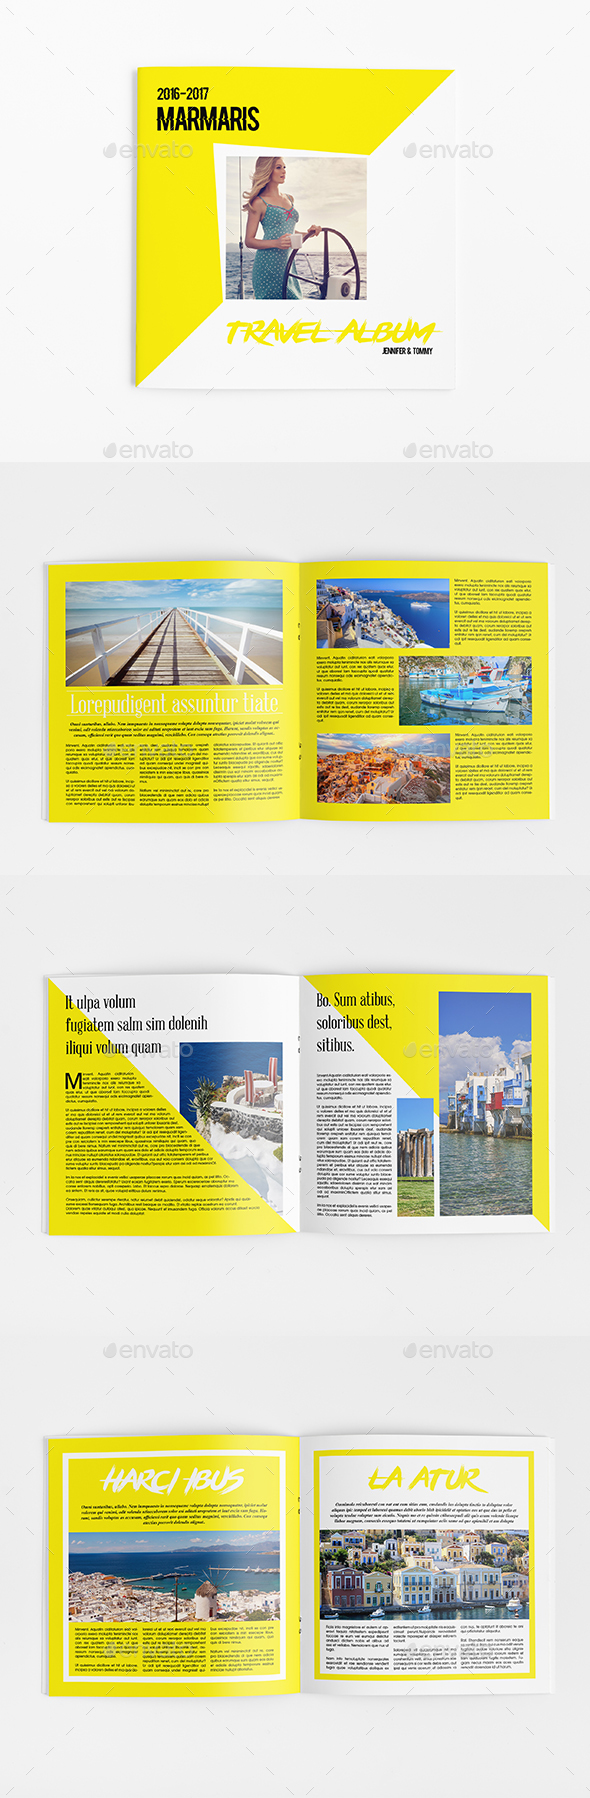 Travel Altum 8 Pages - Catalogs Brochures